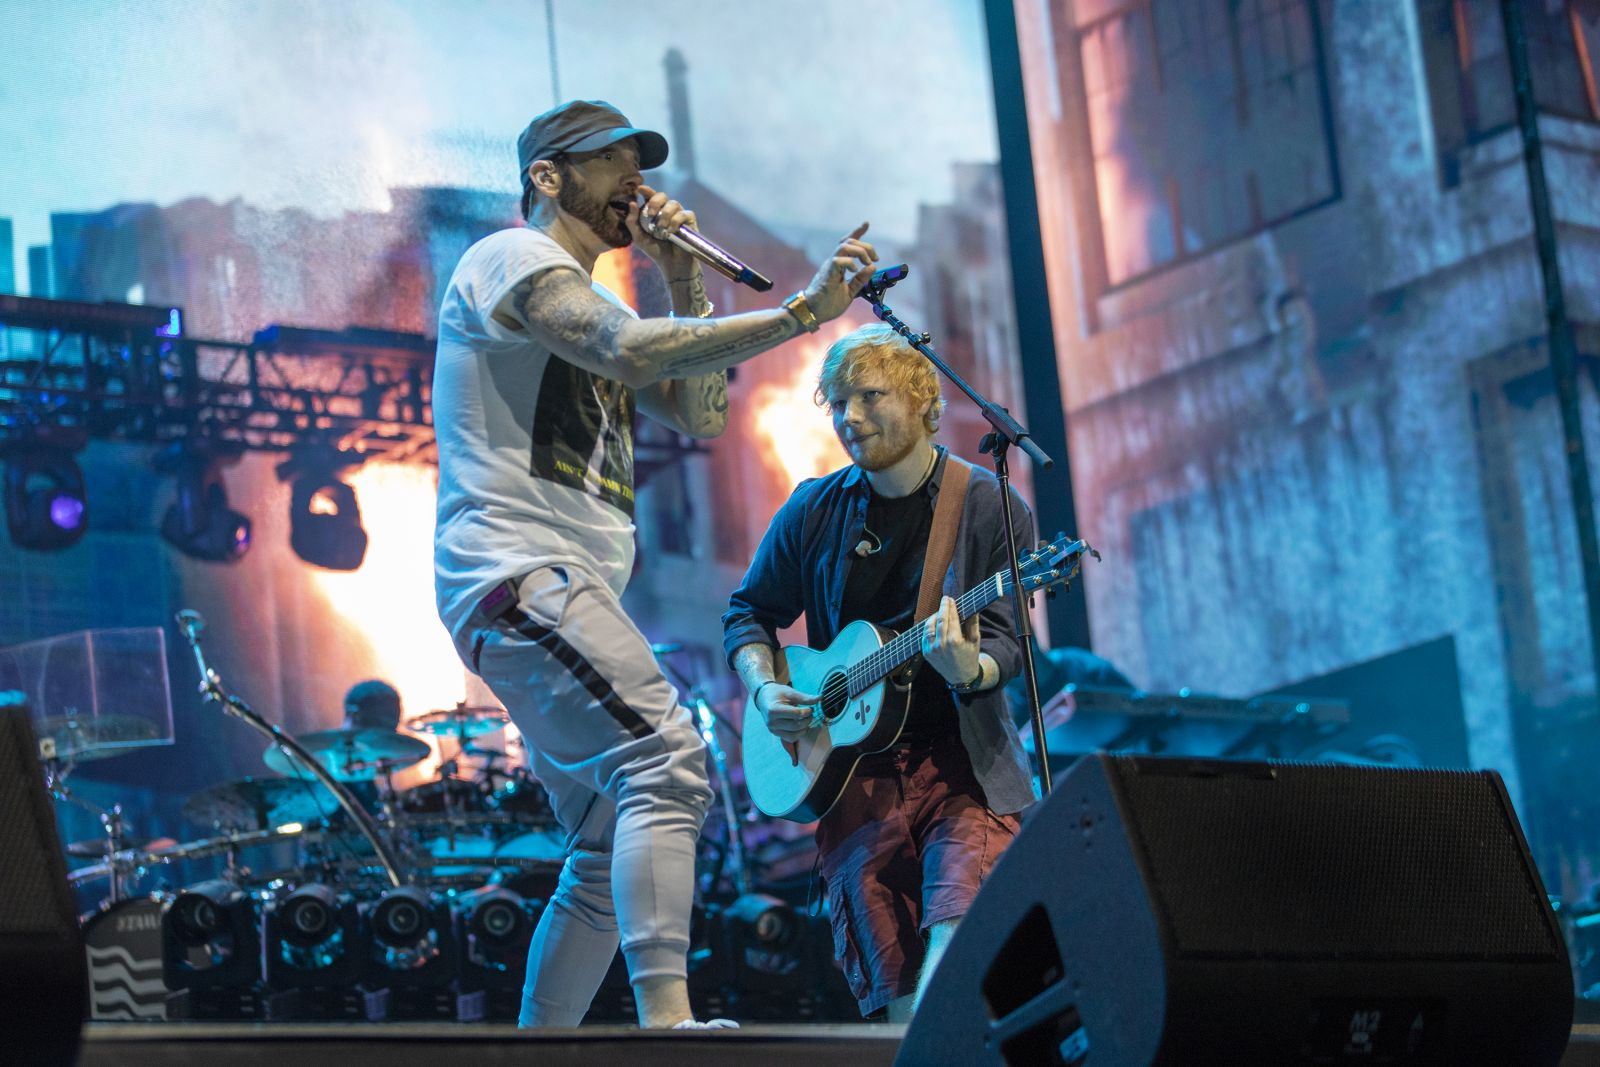 Eminem had published a professional video of him and Ed Sheeran performing in London